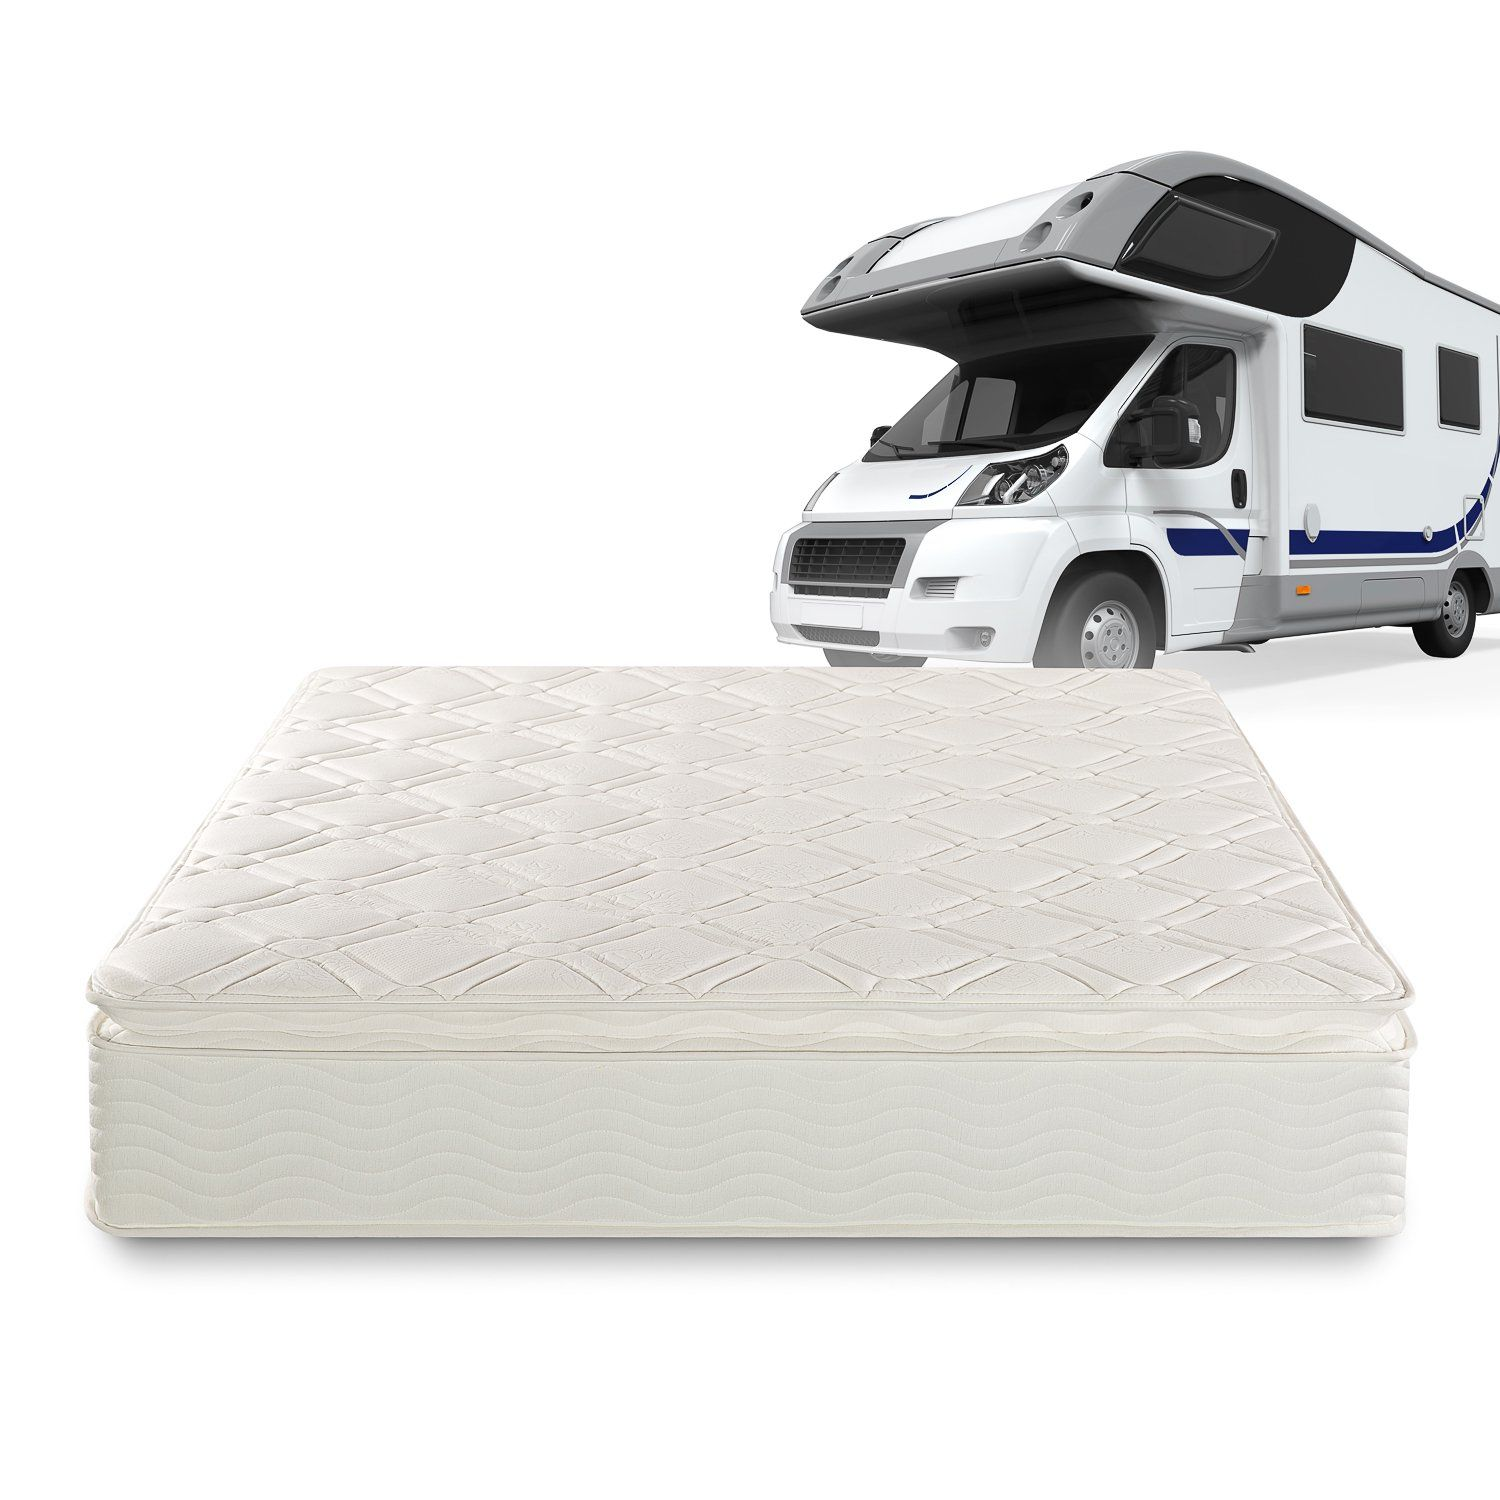 zinus sleep master deluxe spring 10 inch pillow top rv camper